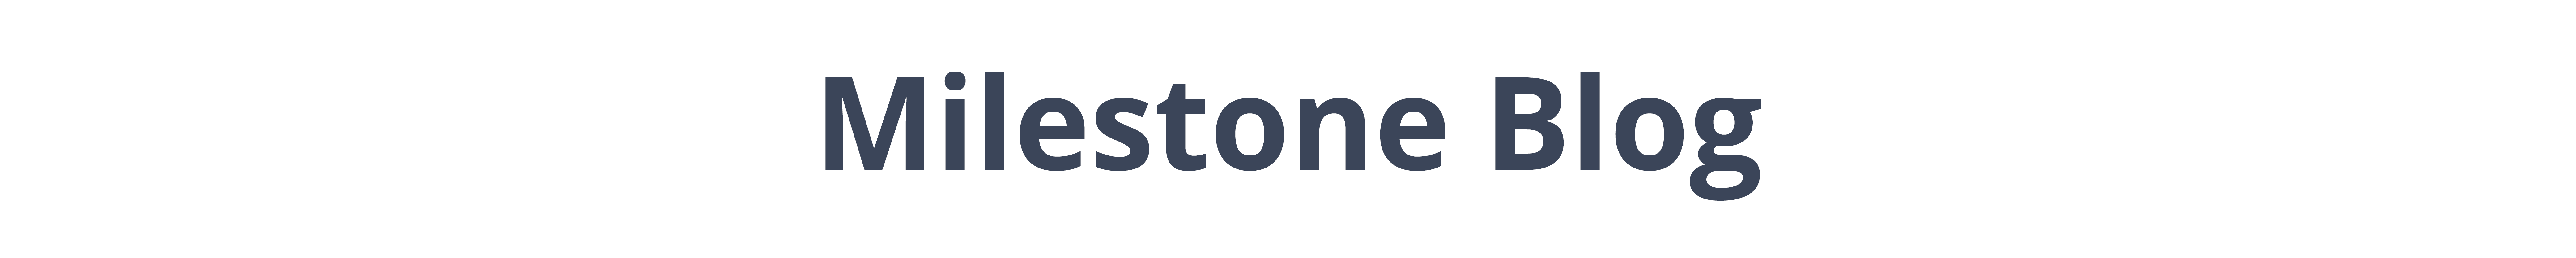 Milestone magazine logo at Lighthouse Memory Care